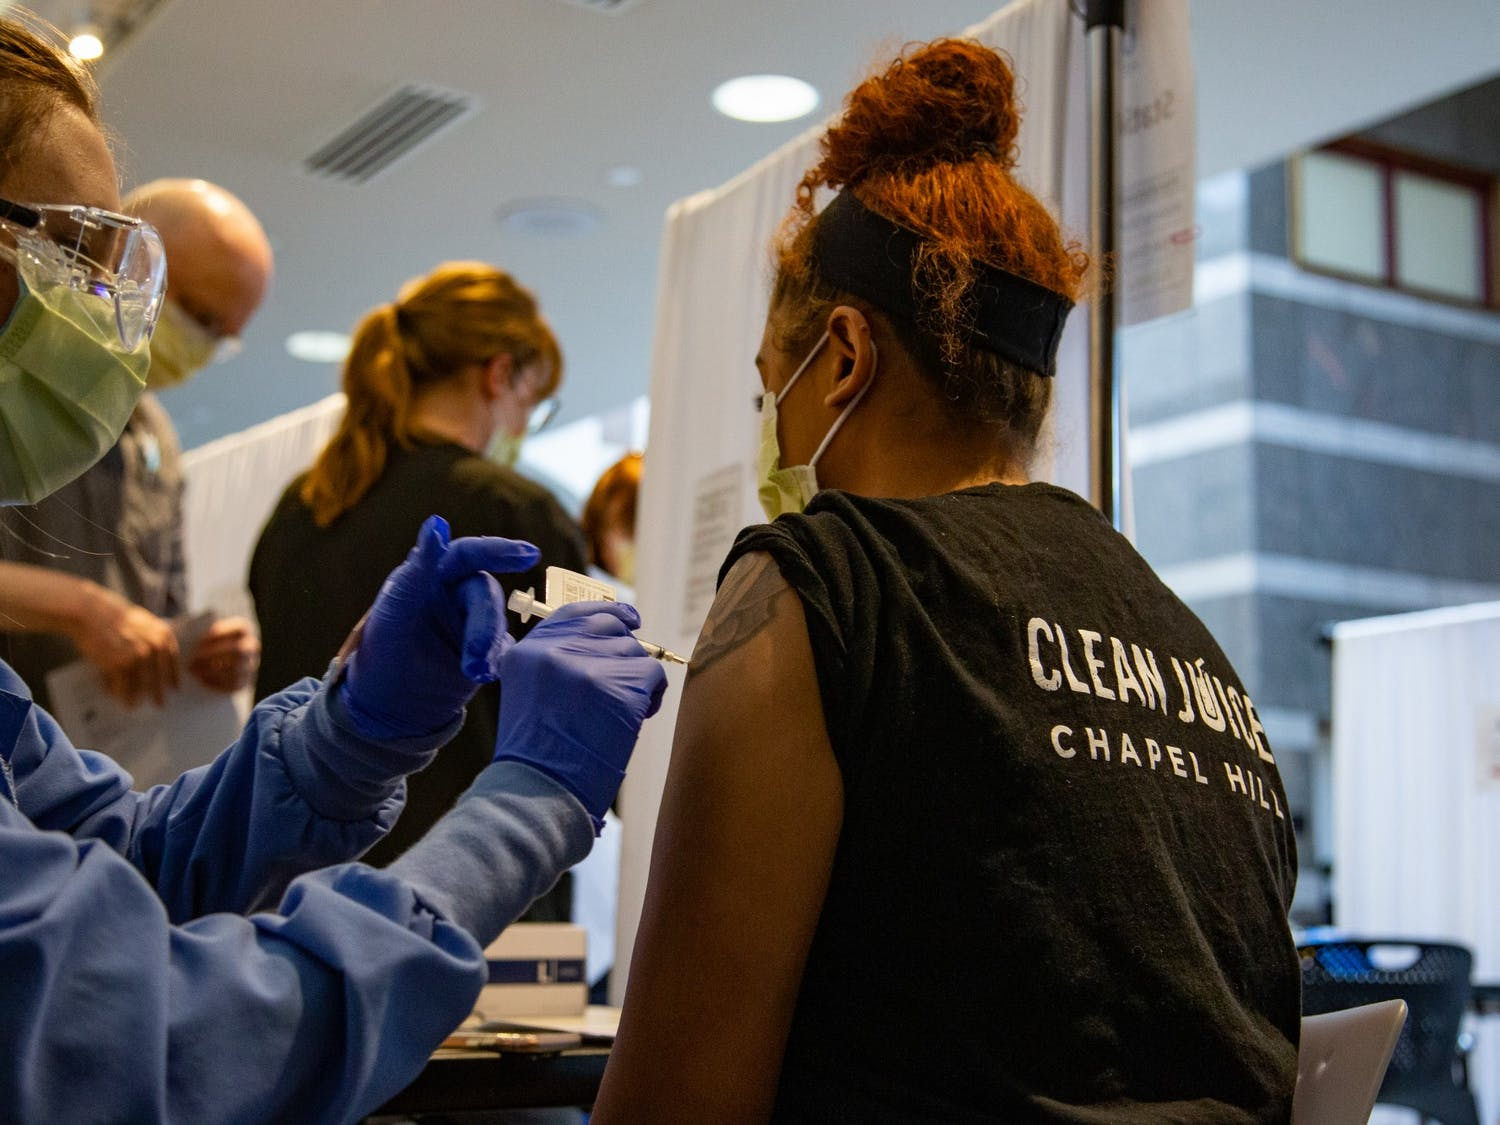 High school senior and Chapel Hill resident Maliah Austine receives her first dose of a COVID-19 vaccination at the Friday Center  on Monday, Mar. 22, 2021. Austine,  a member of N.C. vaccination Group 3, has been working at her in-person job for several months during the pandemic.